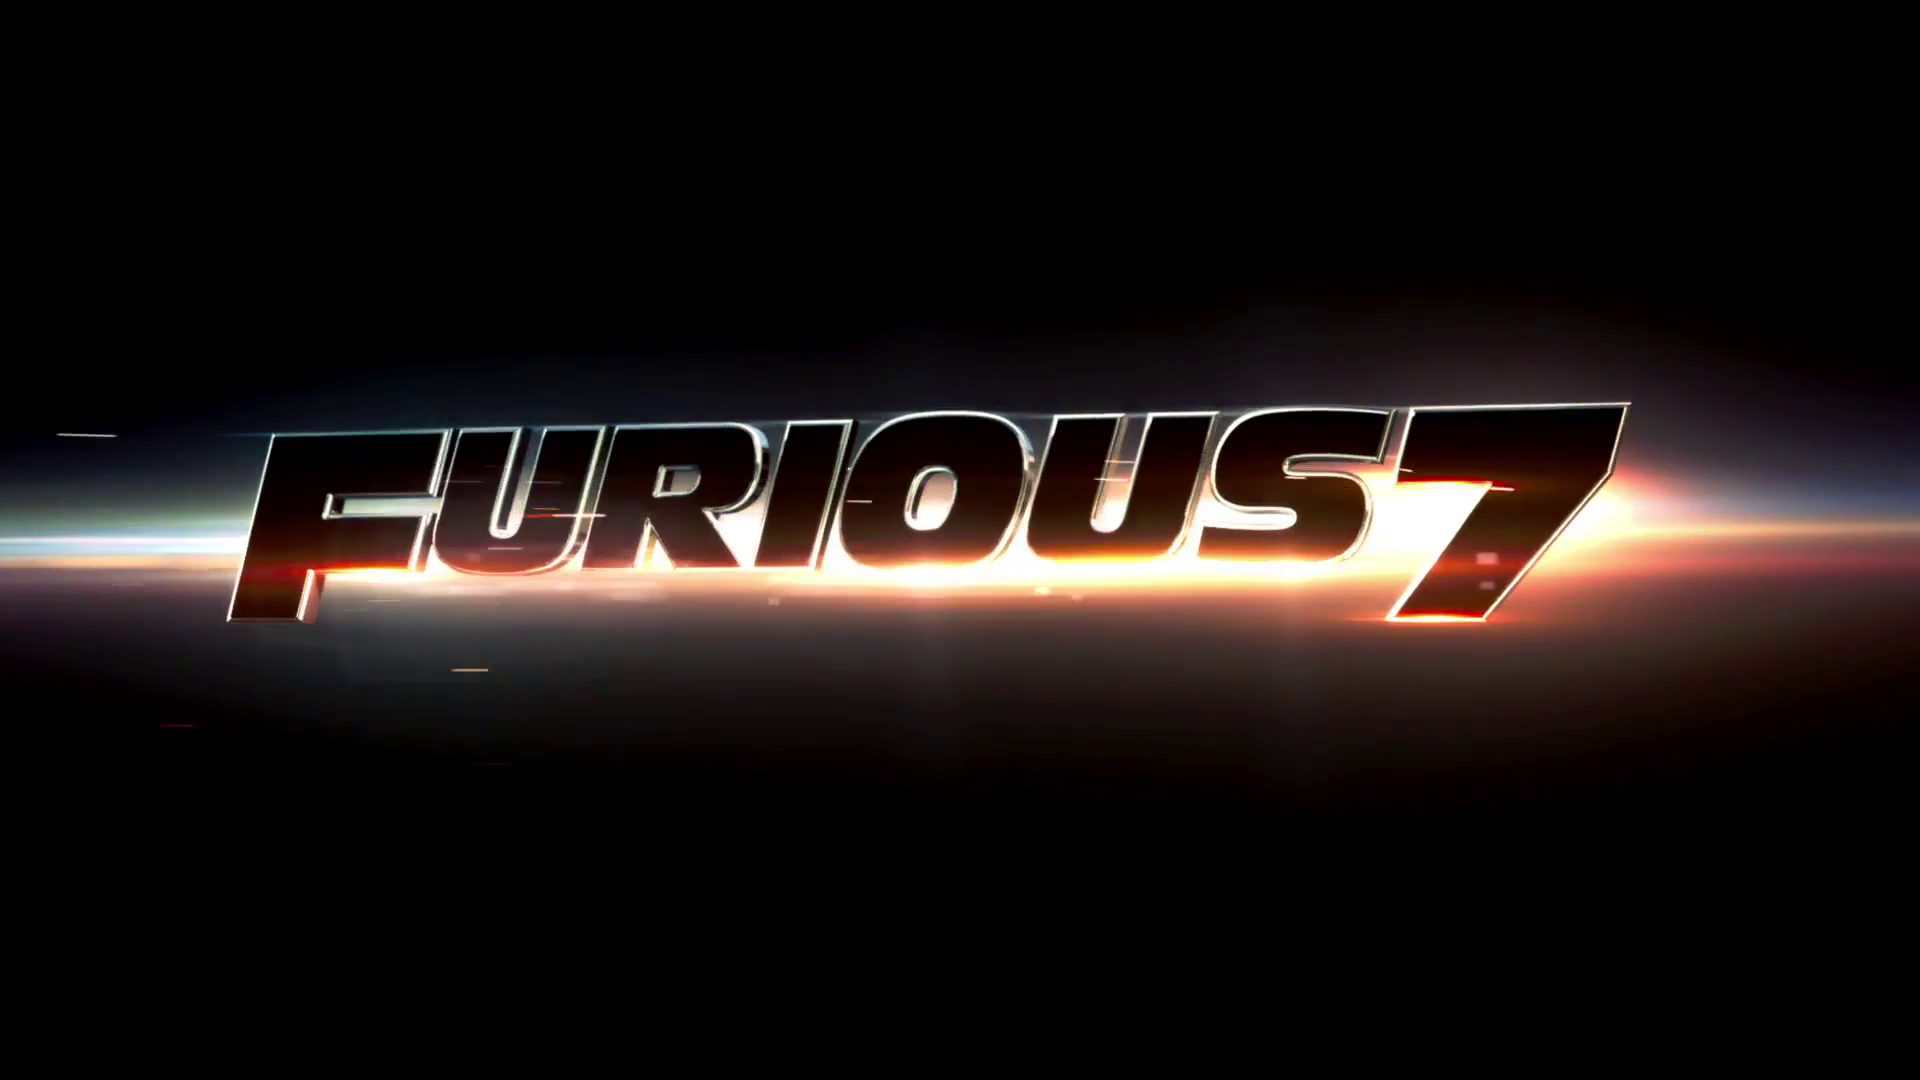 Fast And Furious 7 Wallpaper Free Download